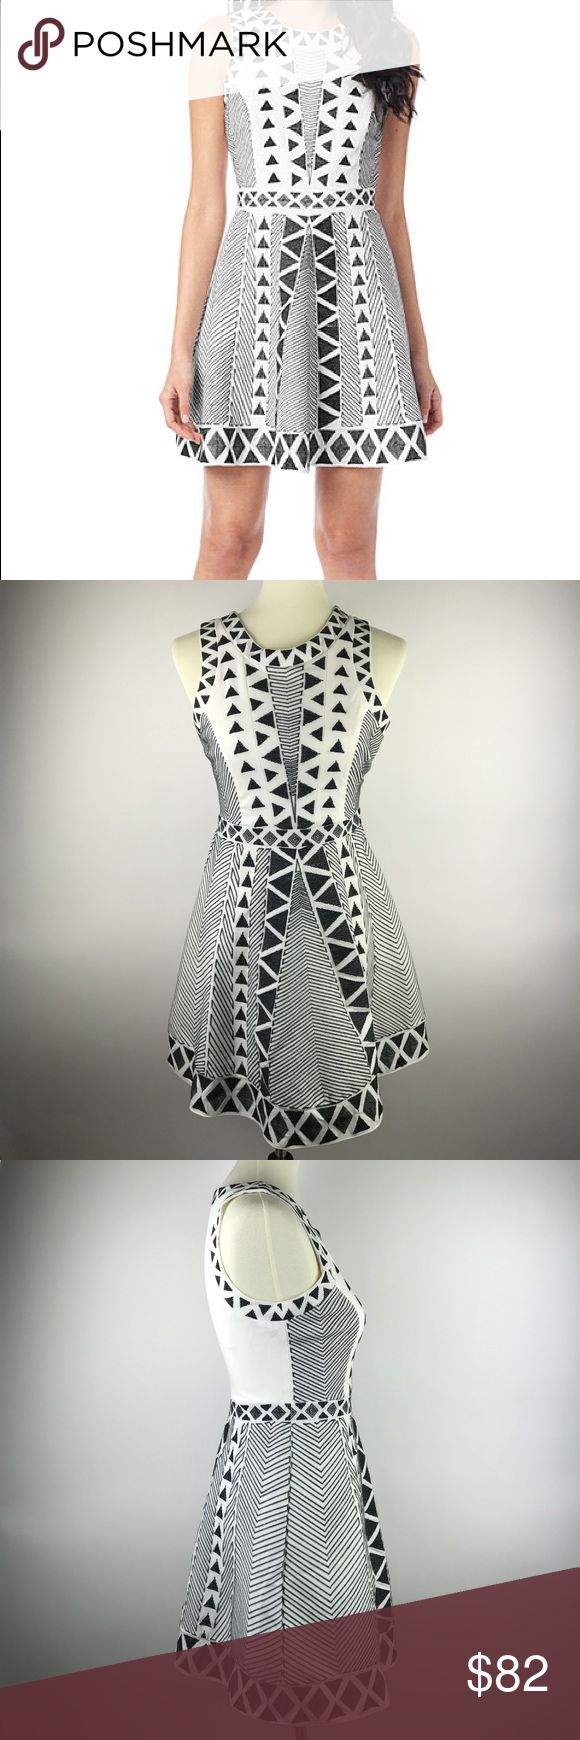 """Parker Kyla Black and White Cocktail Dress This black and white geometric, embroidered, Parker dress is in excellent used condition and was only worn once. It's perfect for summer weddings and would also look great with tights during colder months. The white back offers a great contrast. This dress will get you tons of compliments! Please note minor flaw in fabric, as seen in photos, as well as missing eye at the top of the side zipper.   Measurements taken on seams-  Armpit to Armpit: 16""""…"""